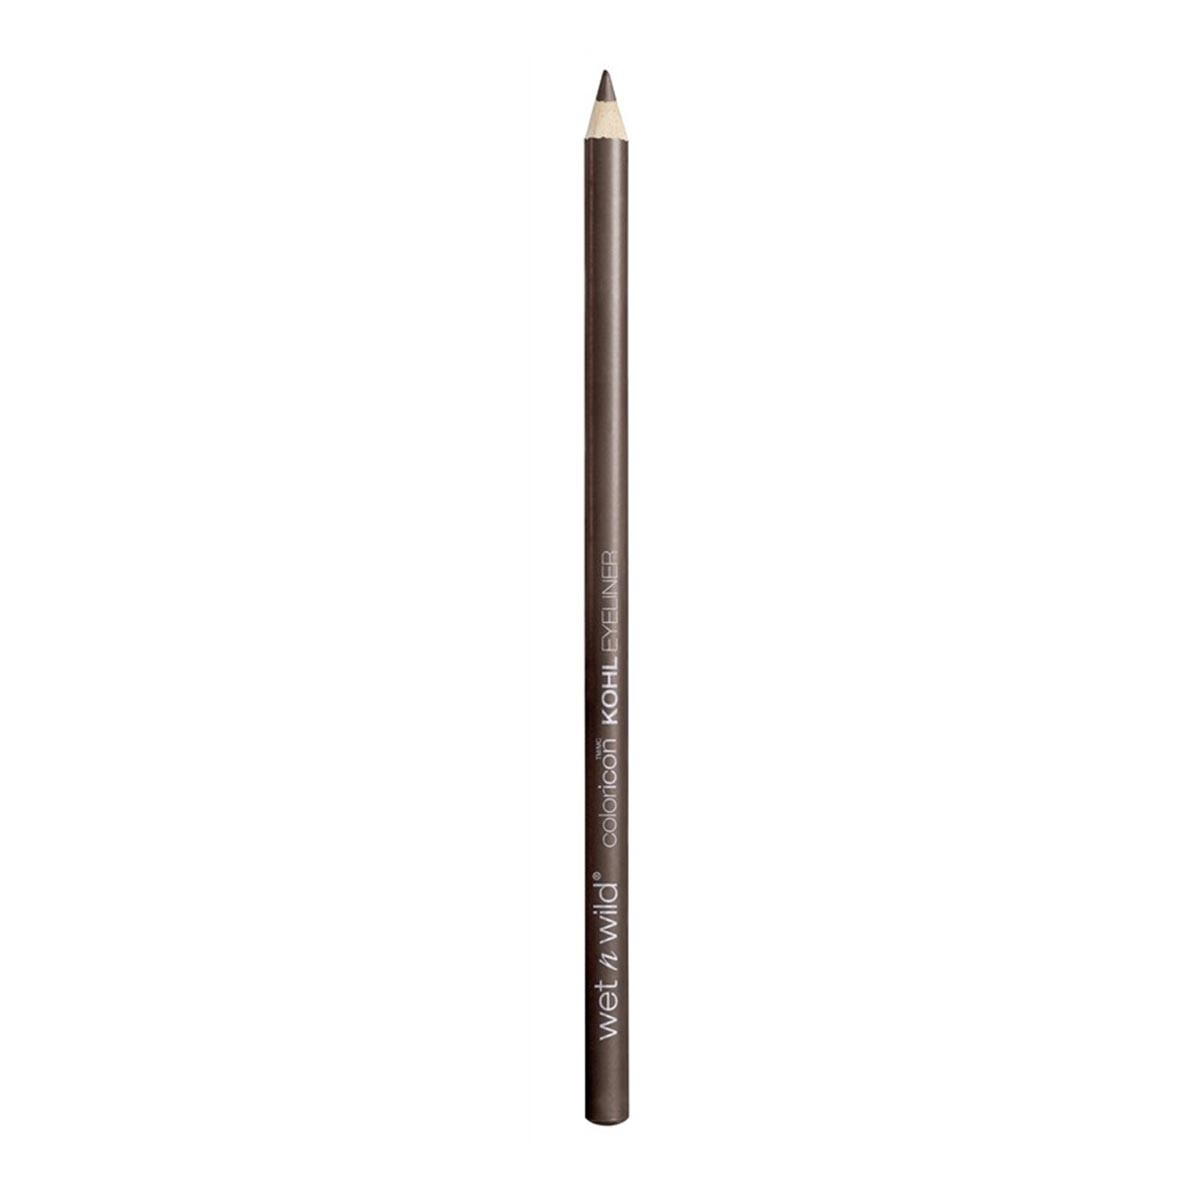 Wet n wild Coloricon Khol Eyeliner Pretty In Mink